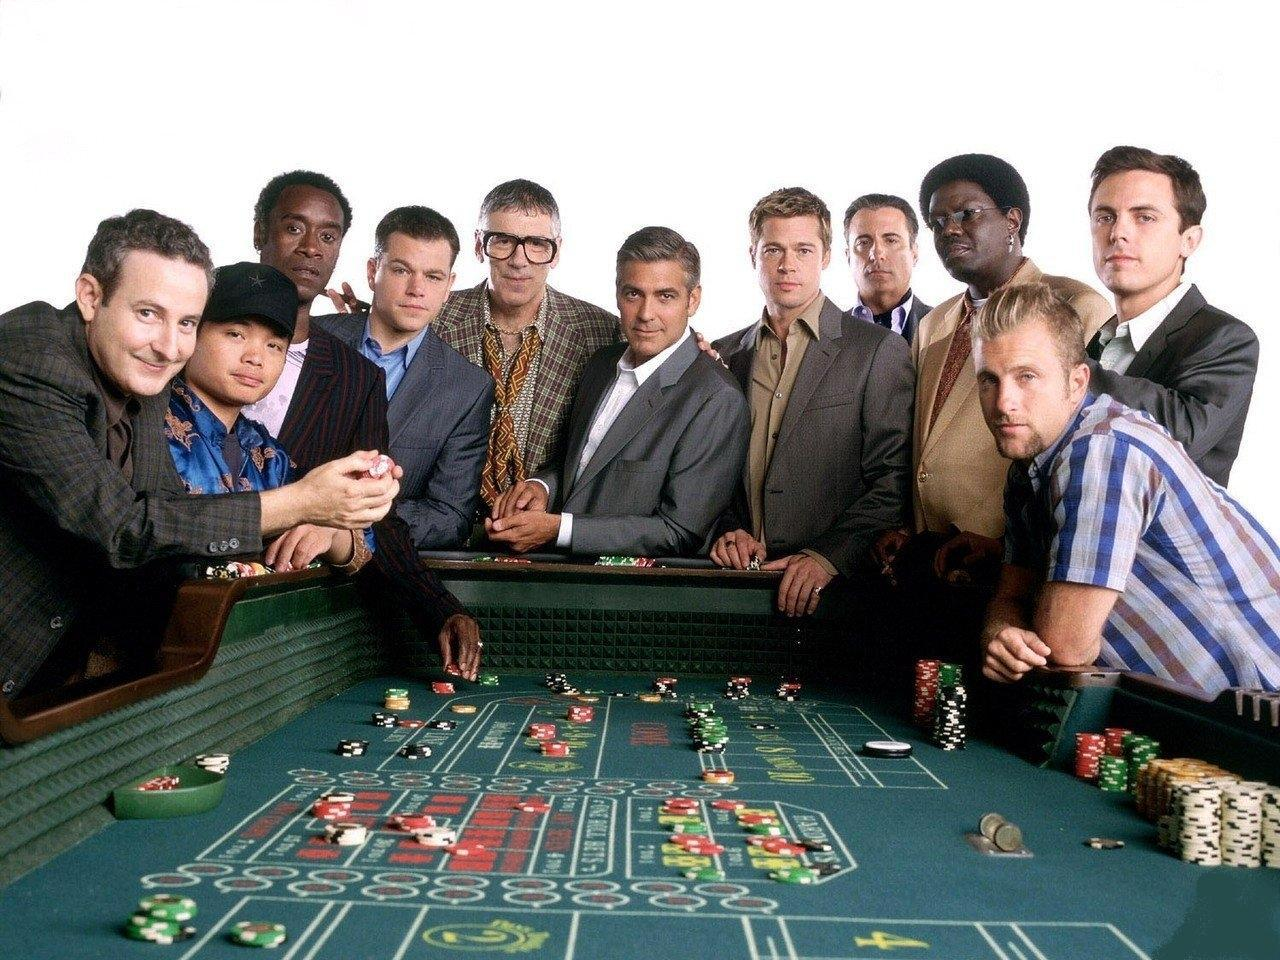 Bellagio Casino is one of the most popular casinos in Las Vegas. Here are other casinos featured in 'Ocean's 11'.